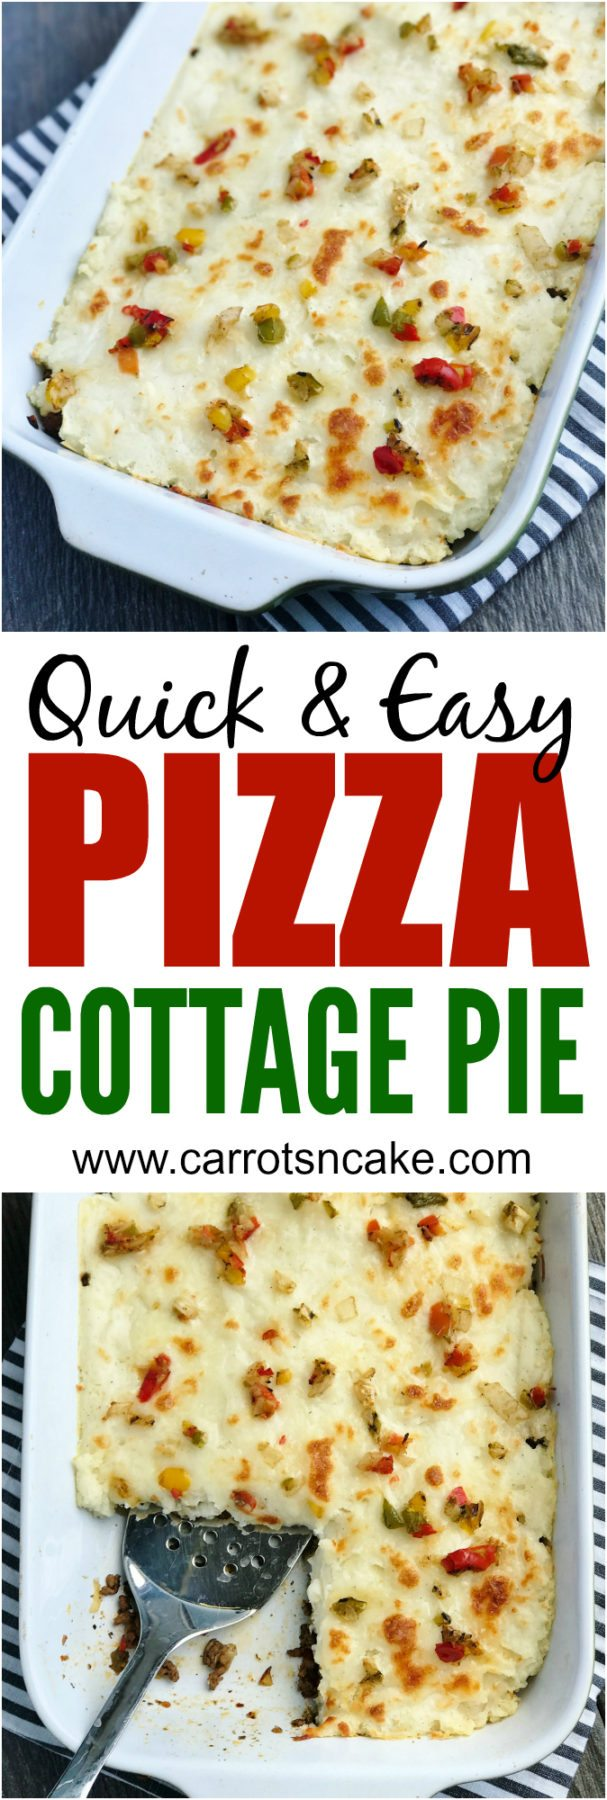 quick-easy-pizza-cottage-pie